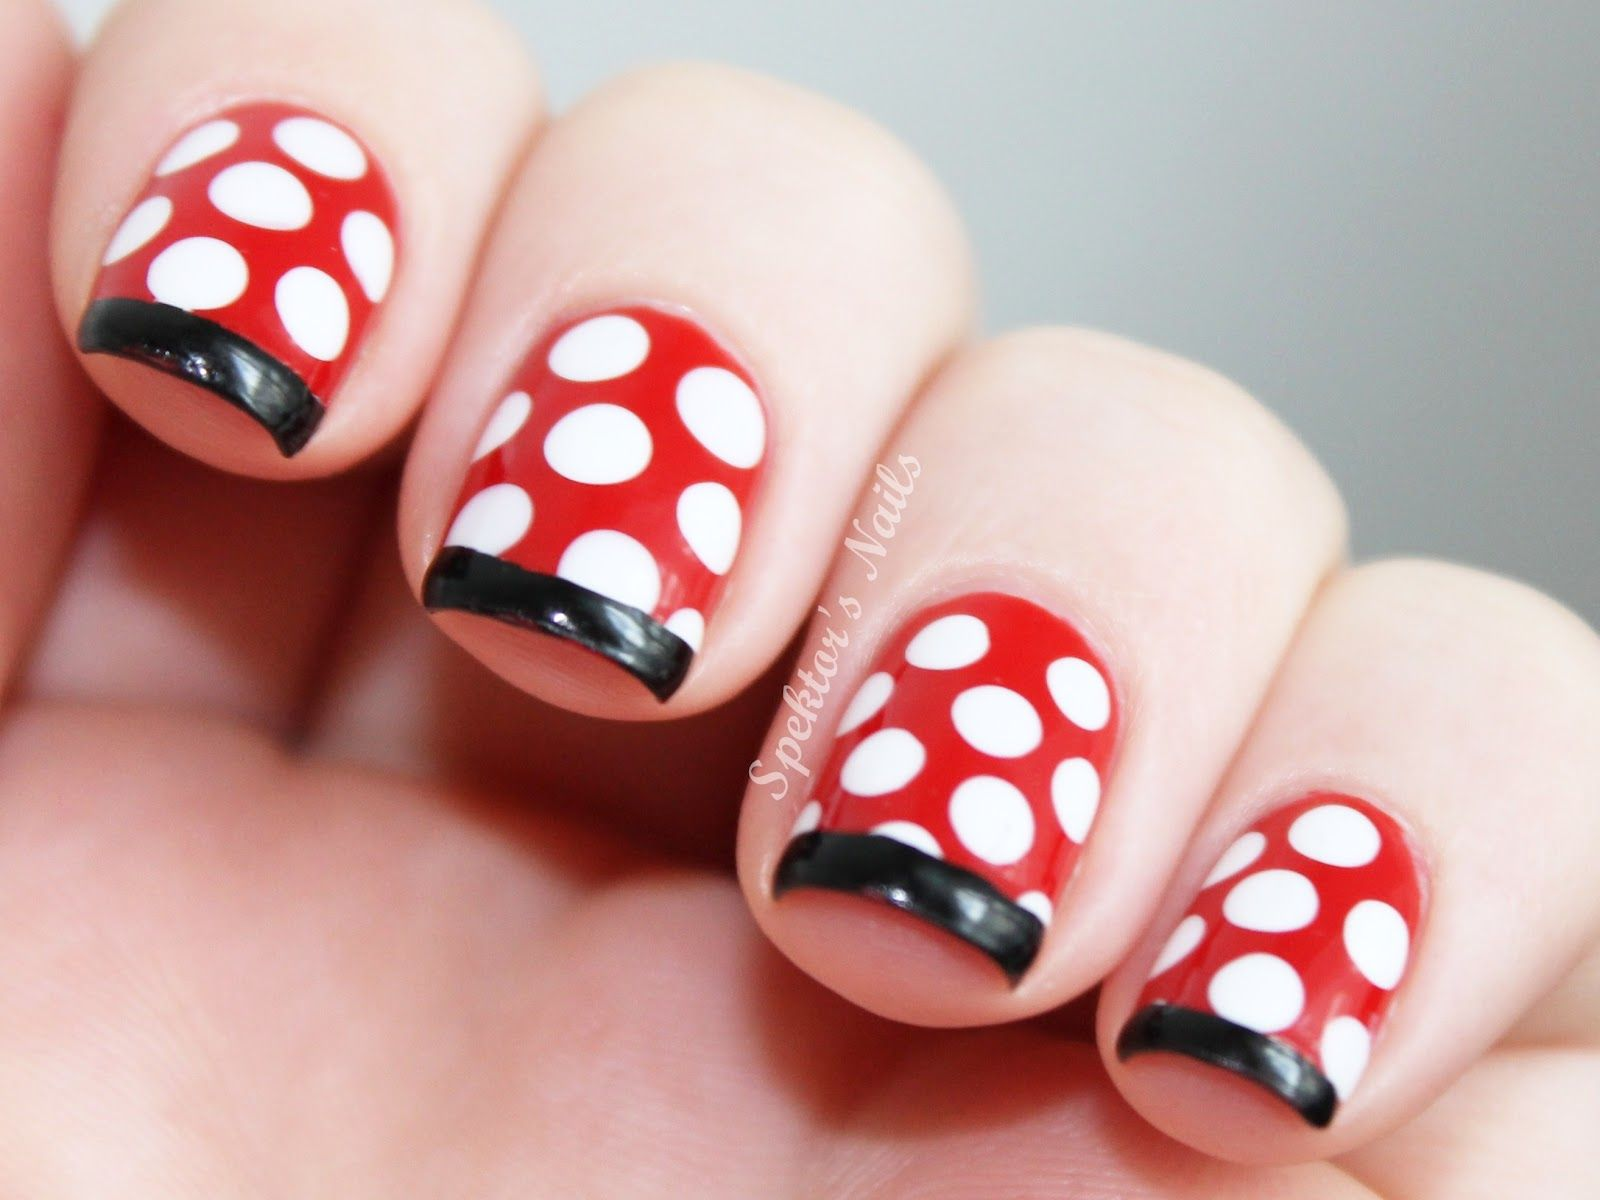 photo relating to Printable Nail Stencils identified as 20+ Printable Minnie Mouse Nail Stencils Illustrations or photos and Guidelines